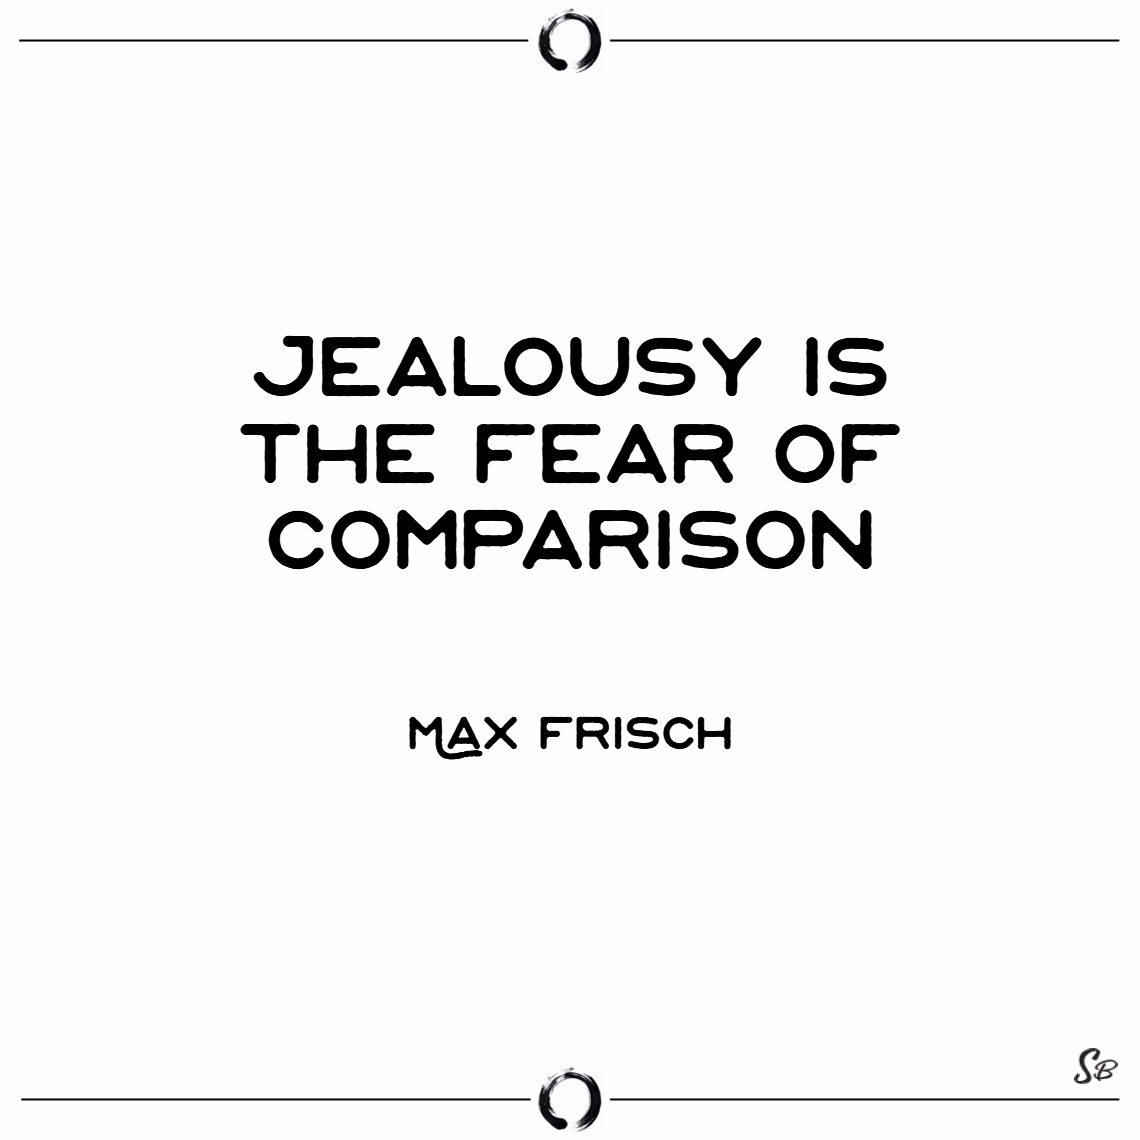 31 Jealousy and Envy Quotes To Help You Reflect | Spirit Button